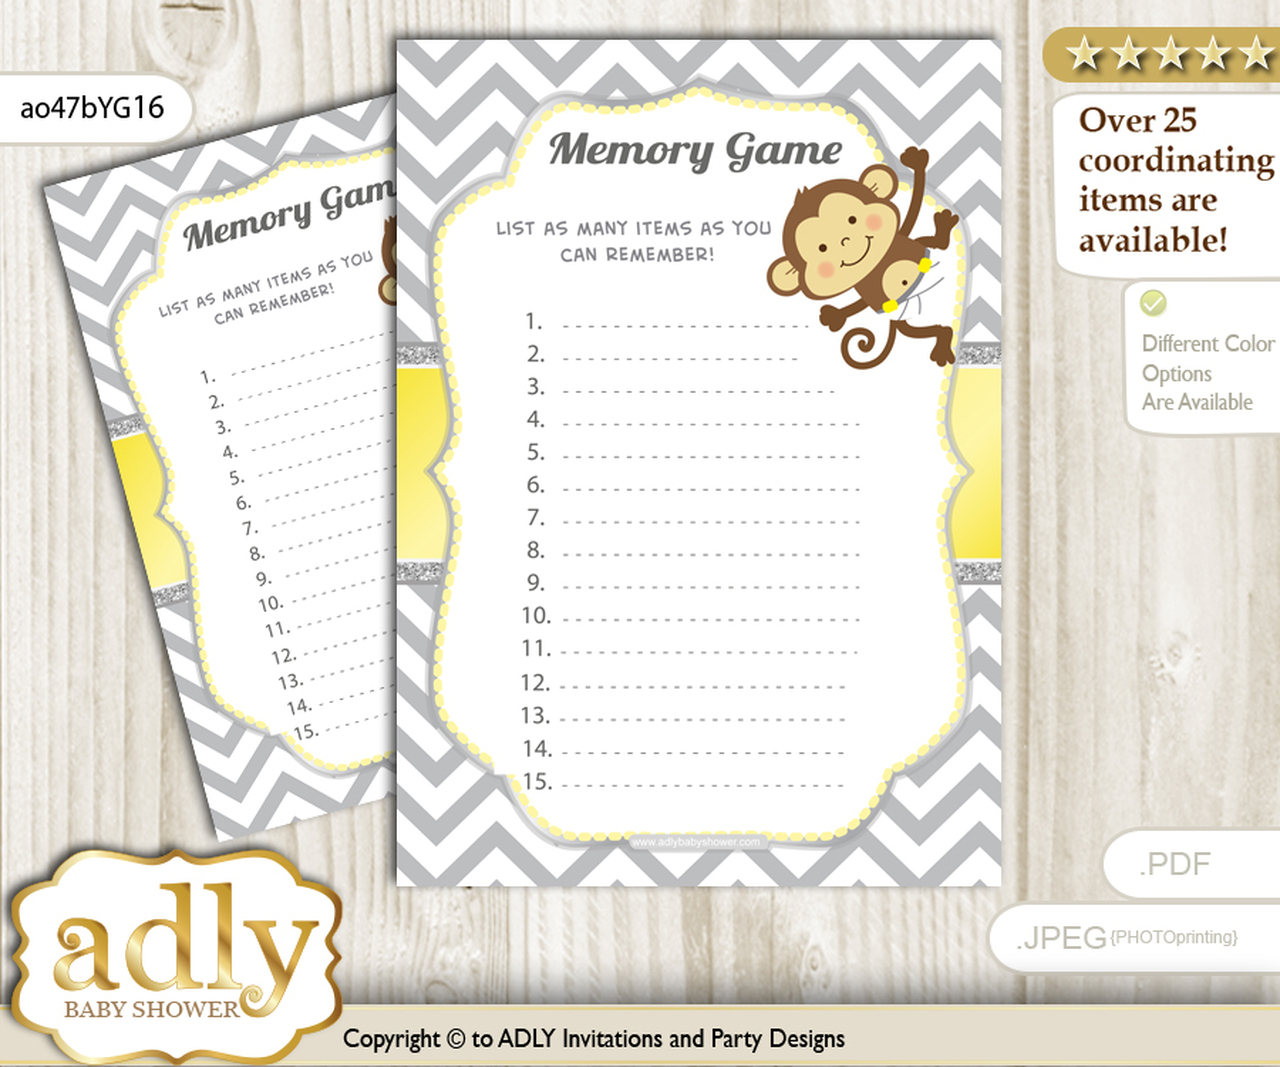 graphic about Baby Shower Printable called Boy Female Monkey Memory Recreation Card for Boy or girl Shower, Printable Bet Card, Yellow Gray, Chevron